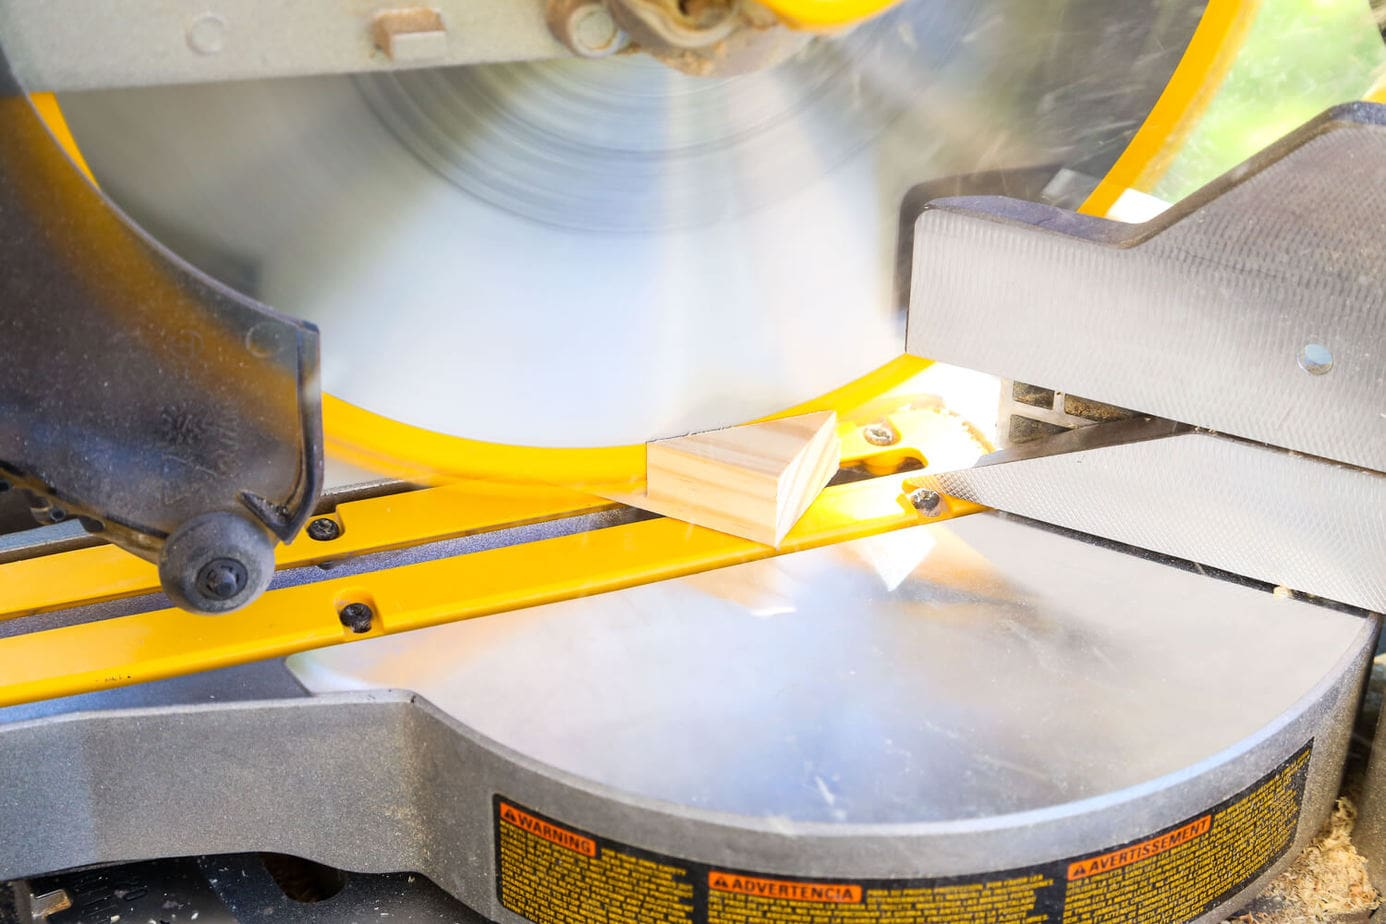 Close up of miter saw making a 45-degree cut